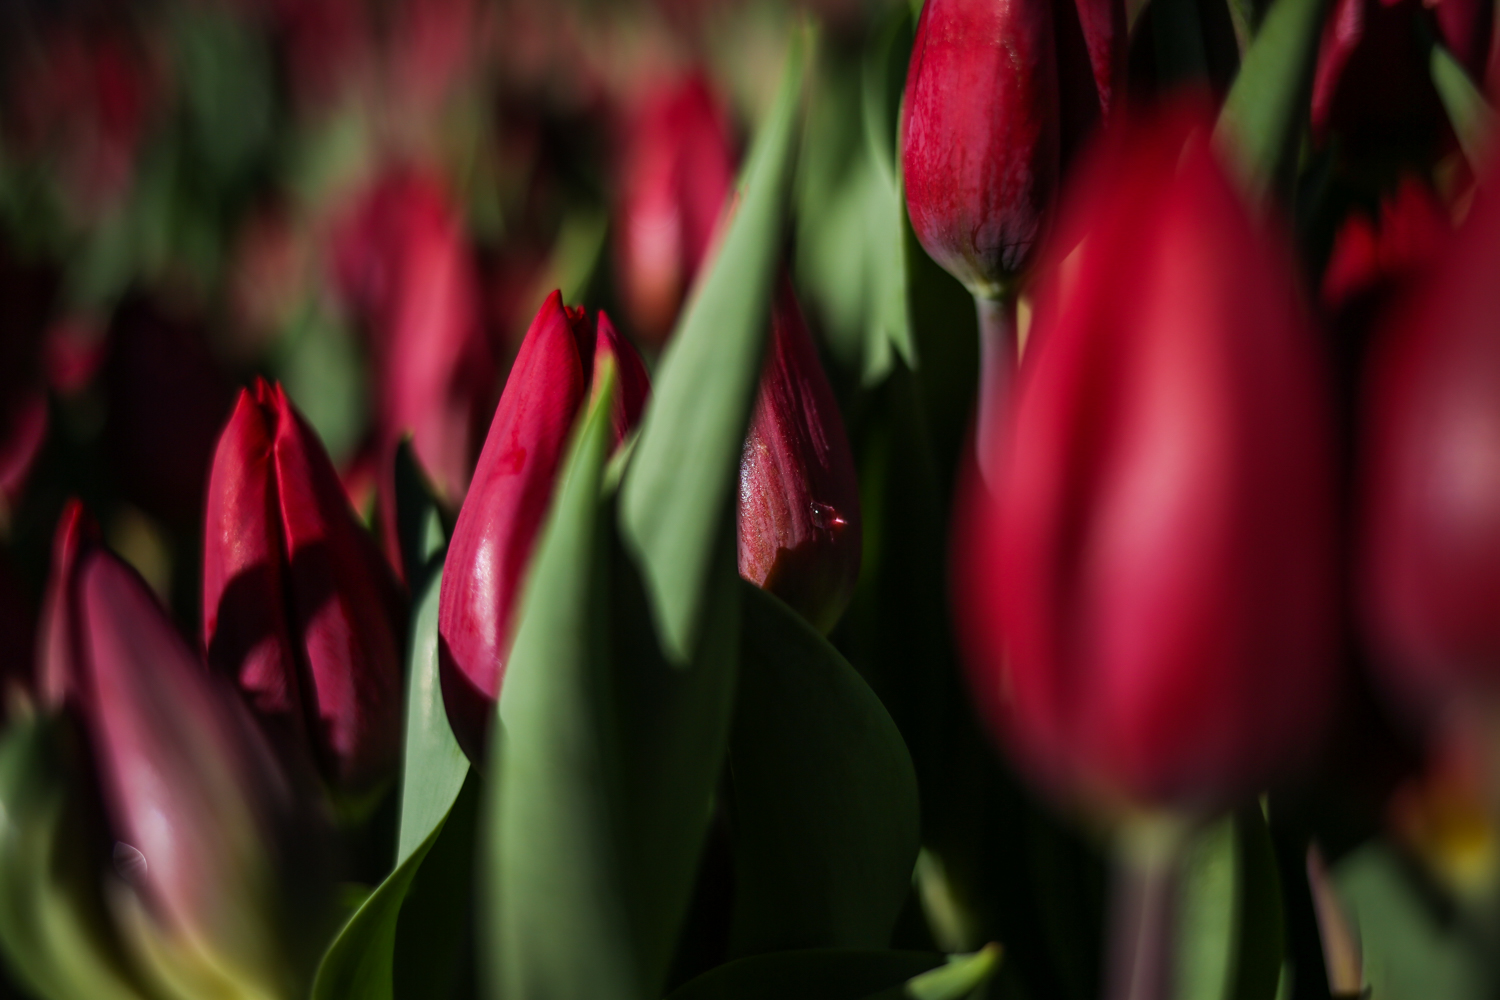 The Park at CityCenterDC is filled with 40,000 tulips from Bloomia. Between Friday, March 23 and Saturday, March 24, visitors can take a free stroll through a field of tulips and purchase a bulb for $1 a pop. The proceeds will benefit DC Central Kitchen.{ } If you miss the field, never fear - Bloomia will have a pop-up flower shop on site from March 15-April 15. (Amanda Andrade-Rhoades/DC Refined)